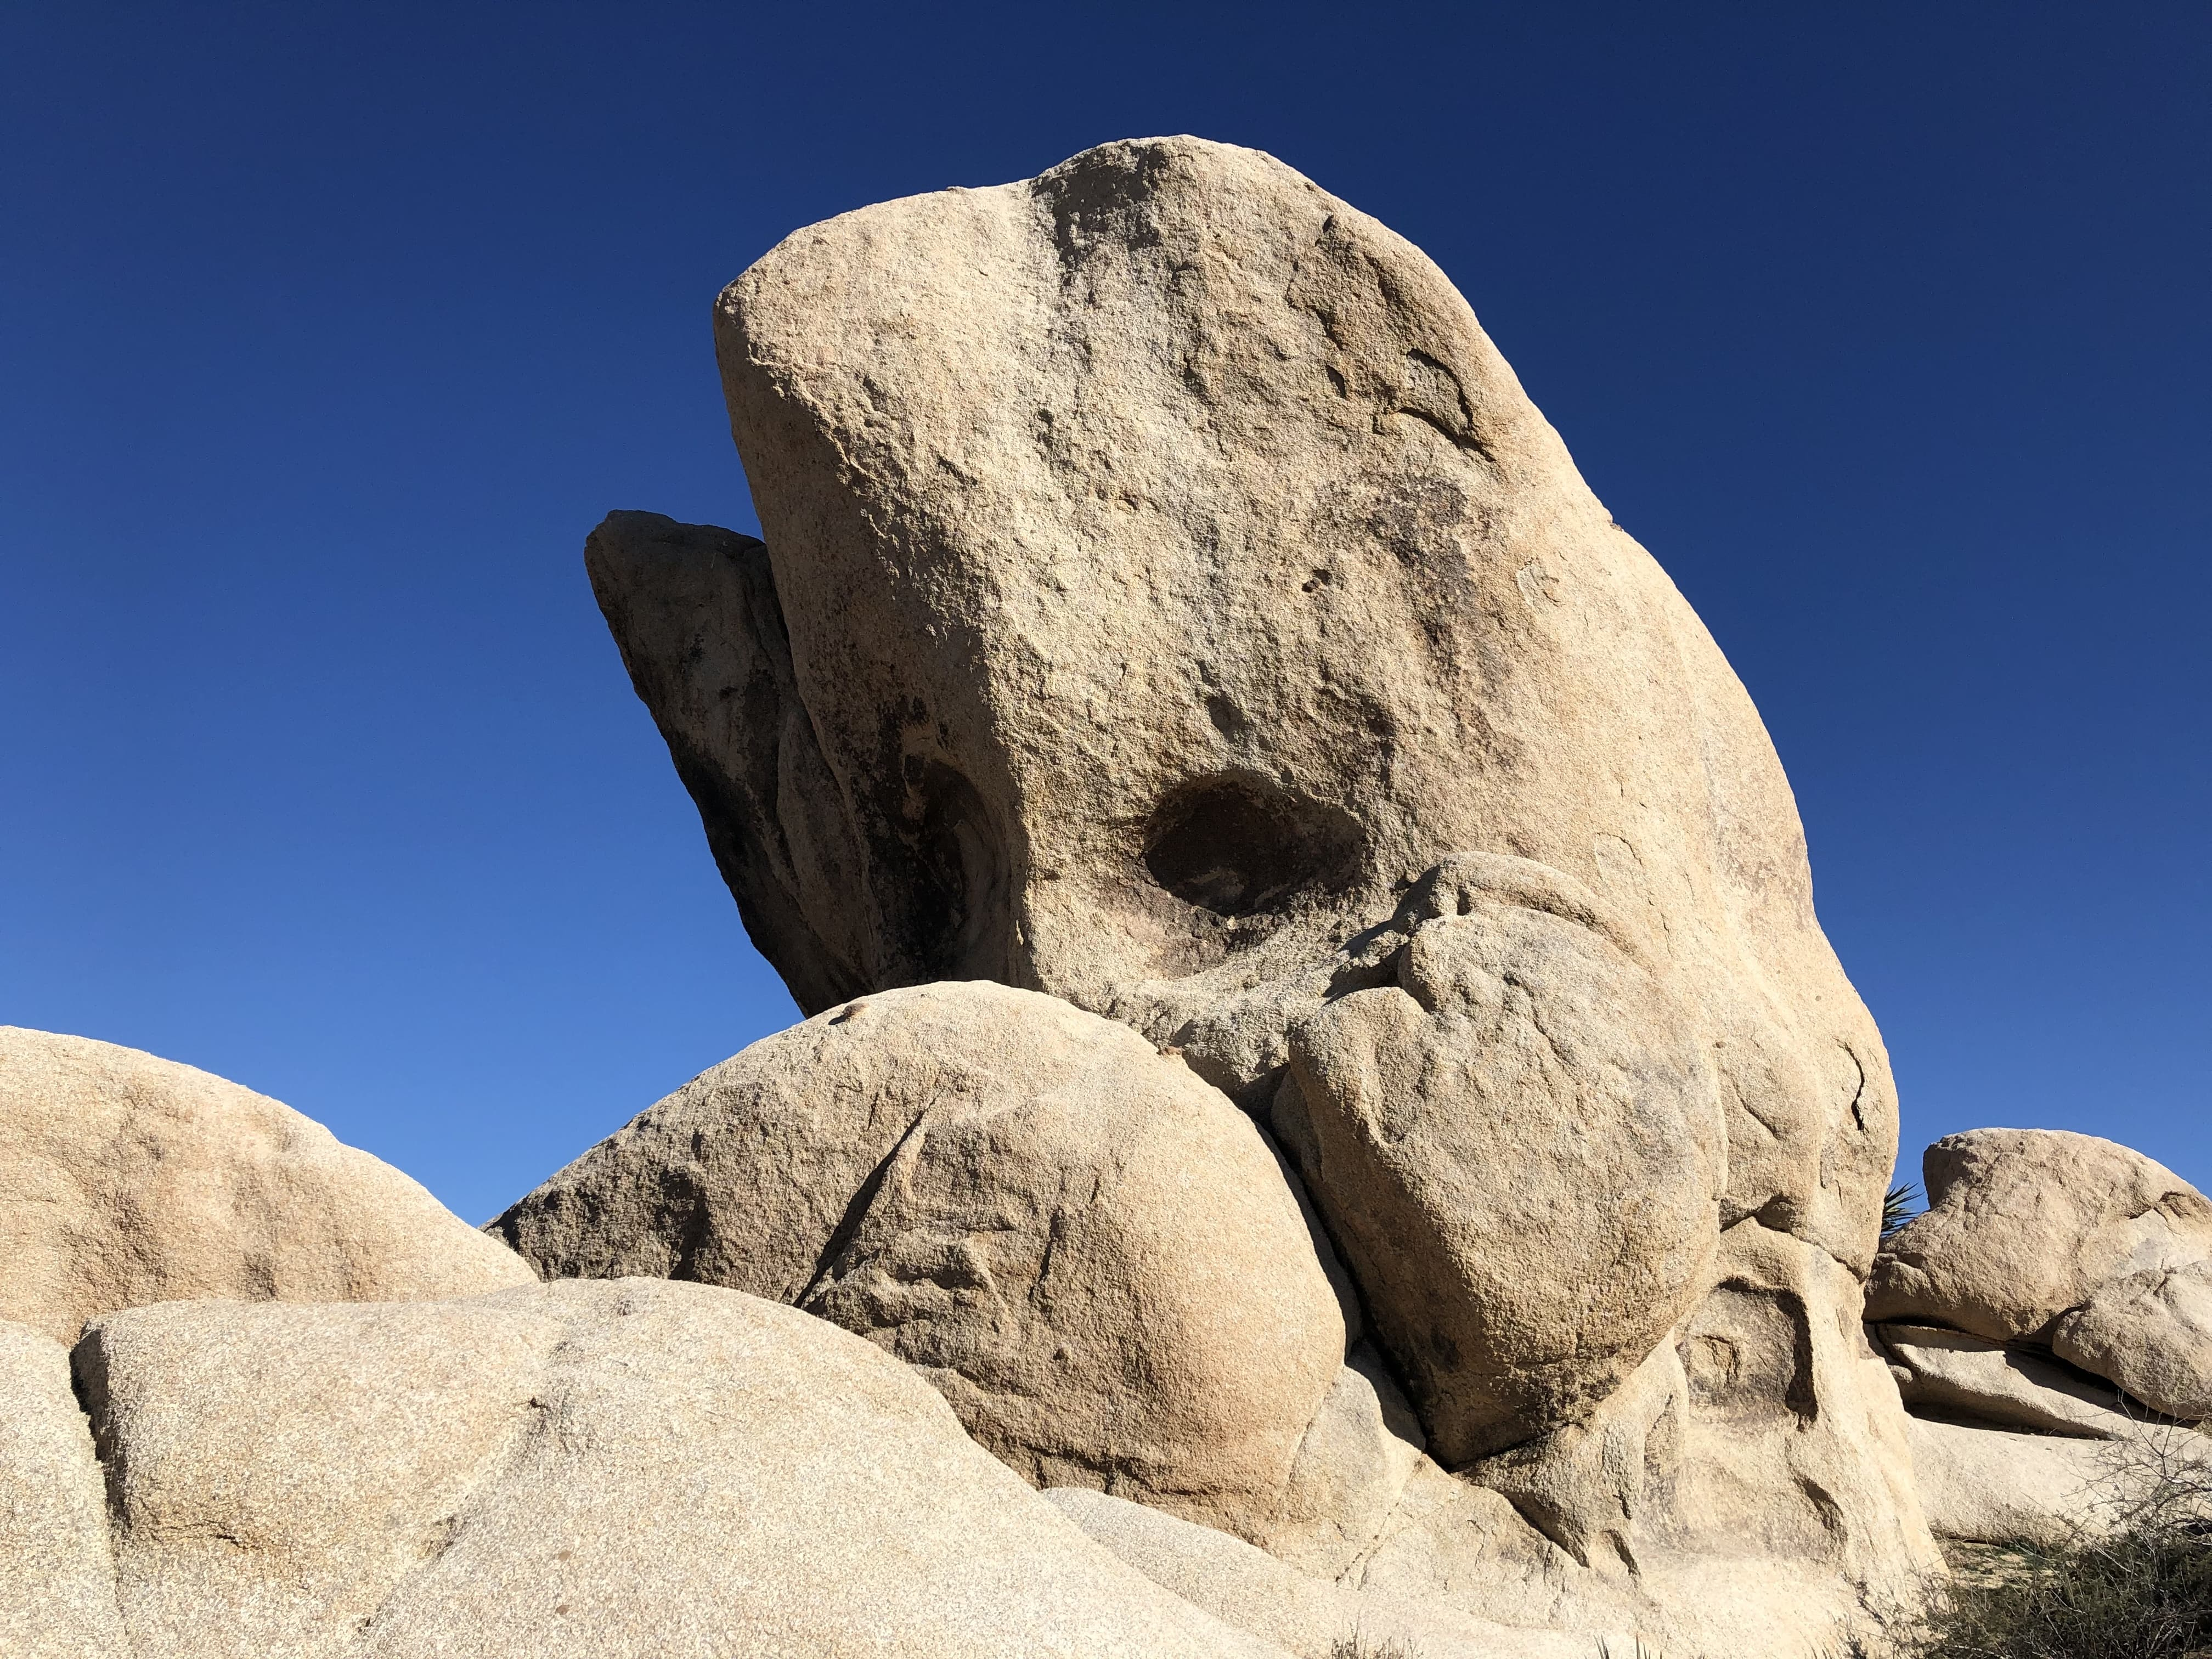 A rock looks like a whale jumping out of the sea in Joshua Tree National Park